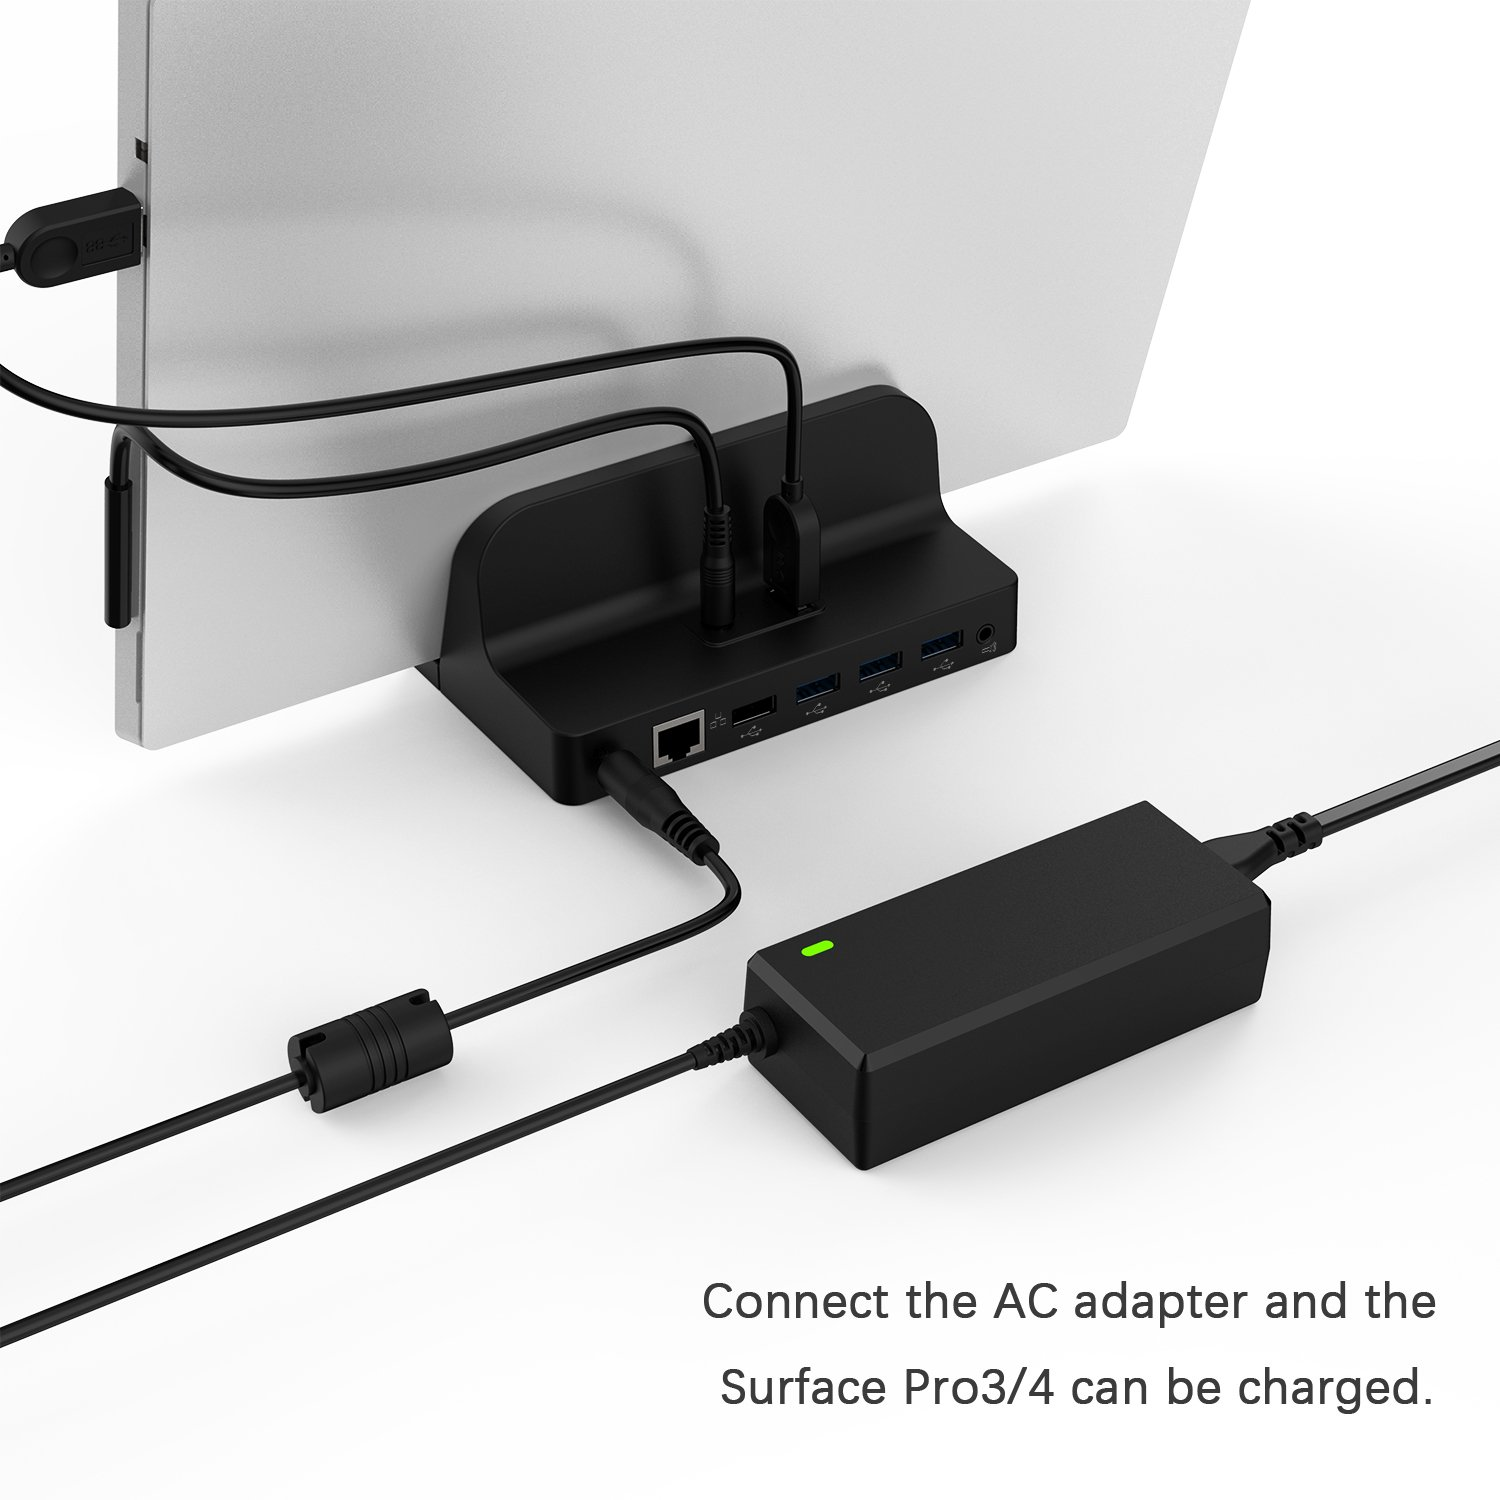 GOOQ Microsoft Surface Dock, Laptop Docking Station Charger Stand for Microsoft Surface Pro 3/Pro 4 by GOOQ (Image #5)